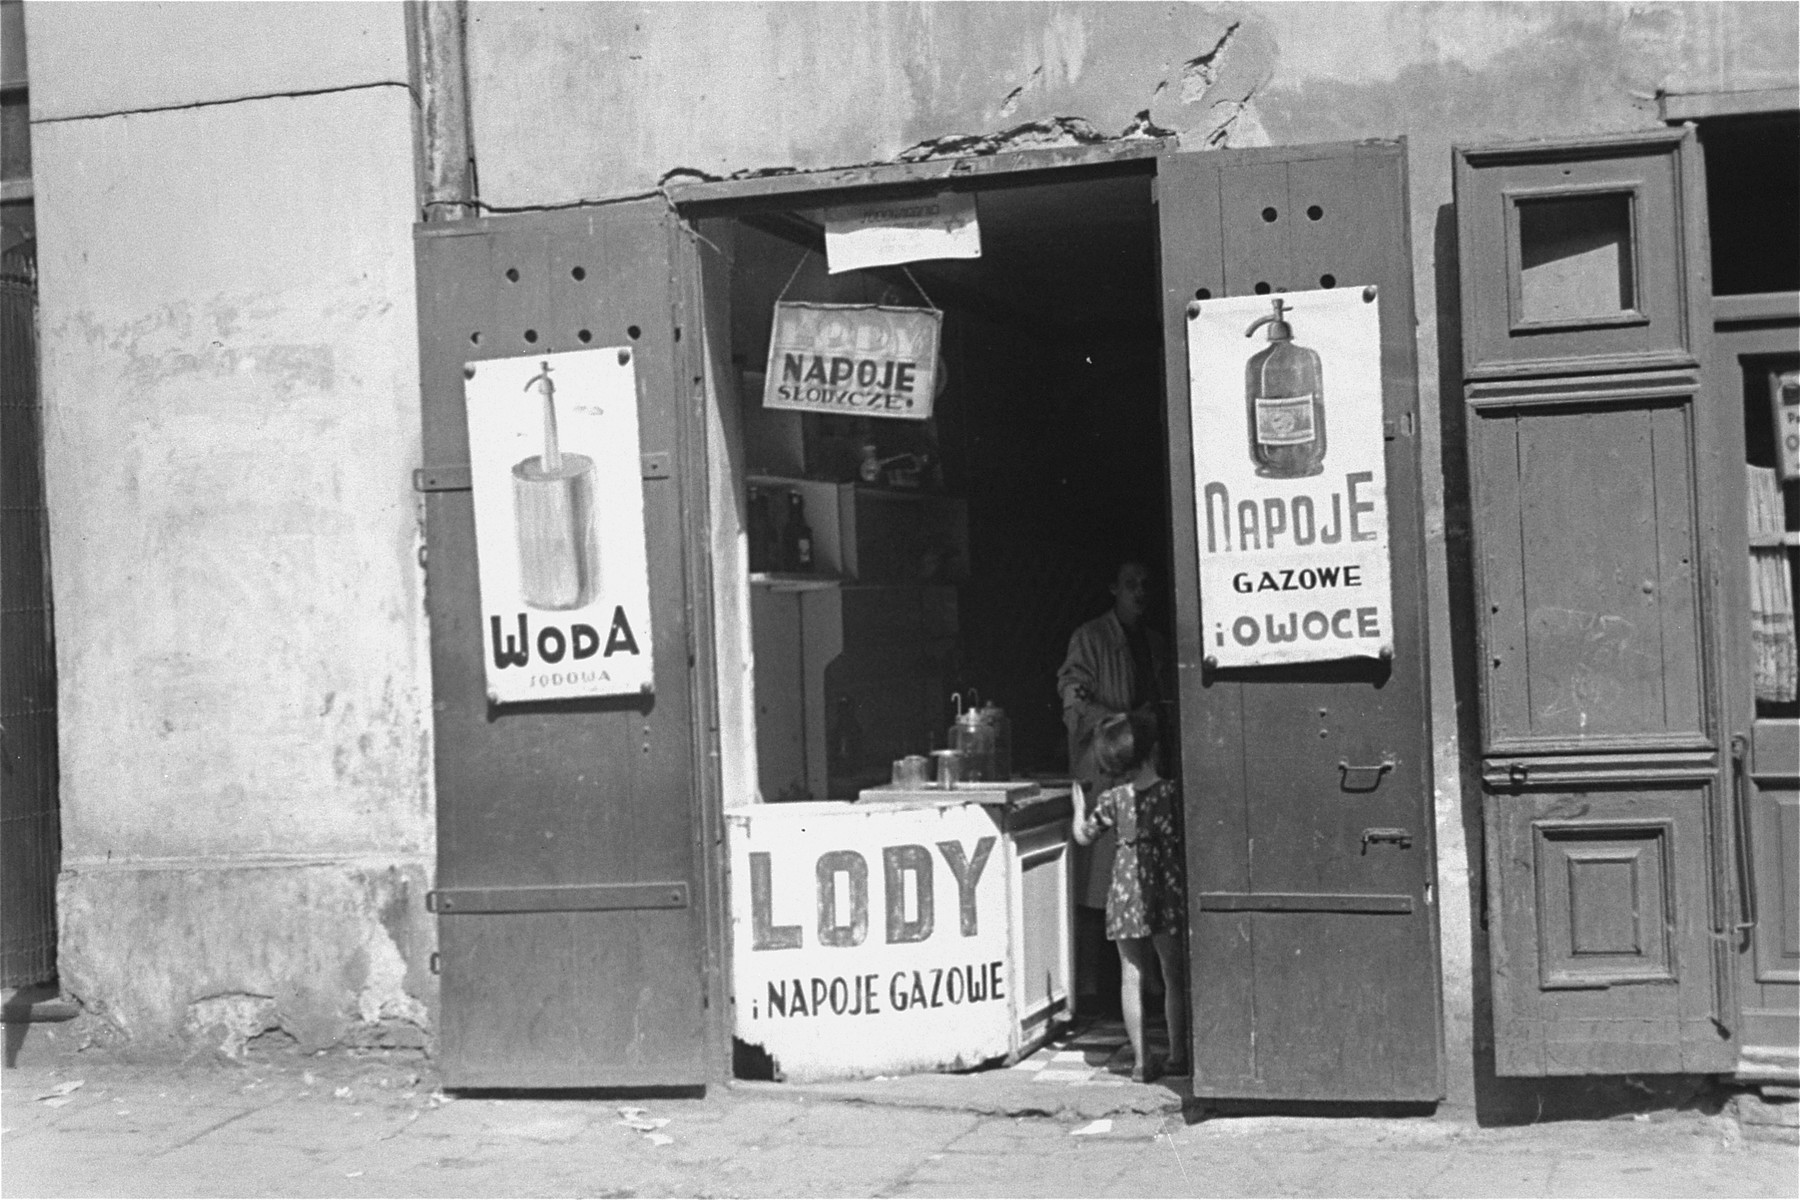 Signs posted at the entrance to a shop in the Warsaw ghetto advertise soft drinks and ice cream.